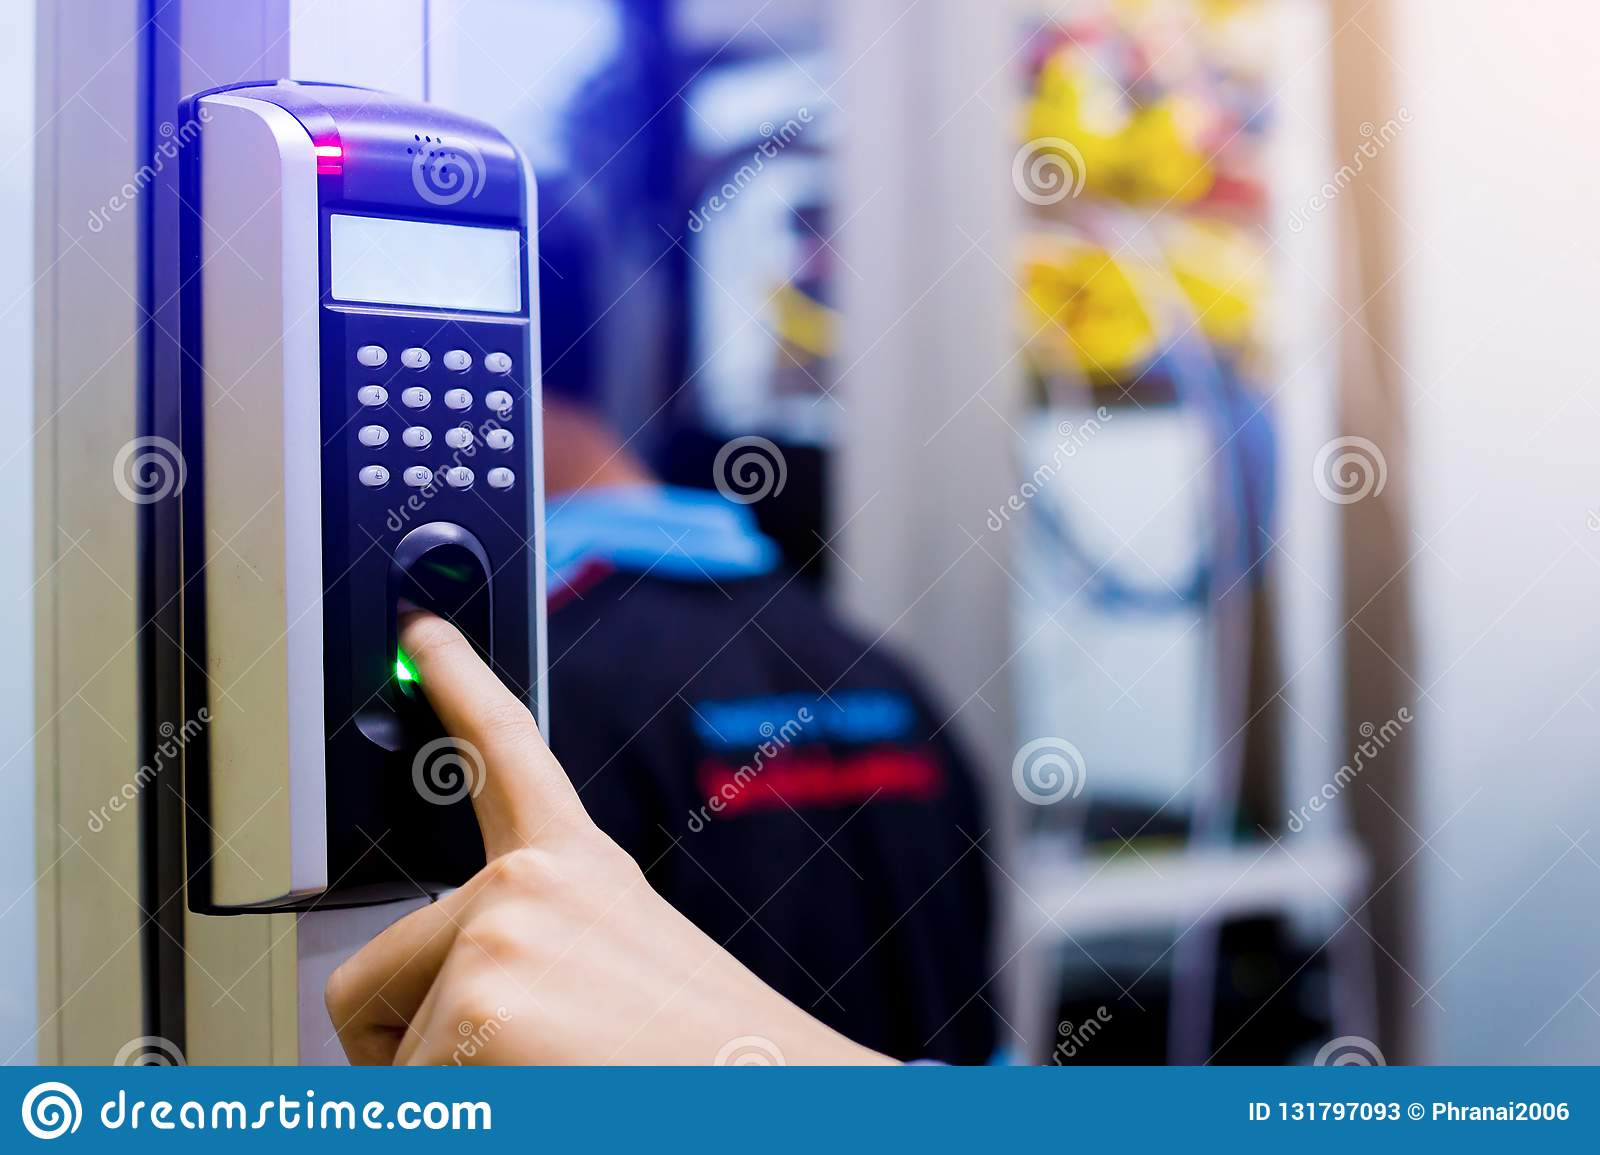 Staff Push Down Electronic Control Machine With Finger Scan